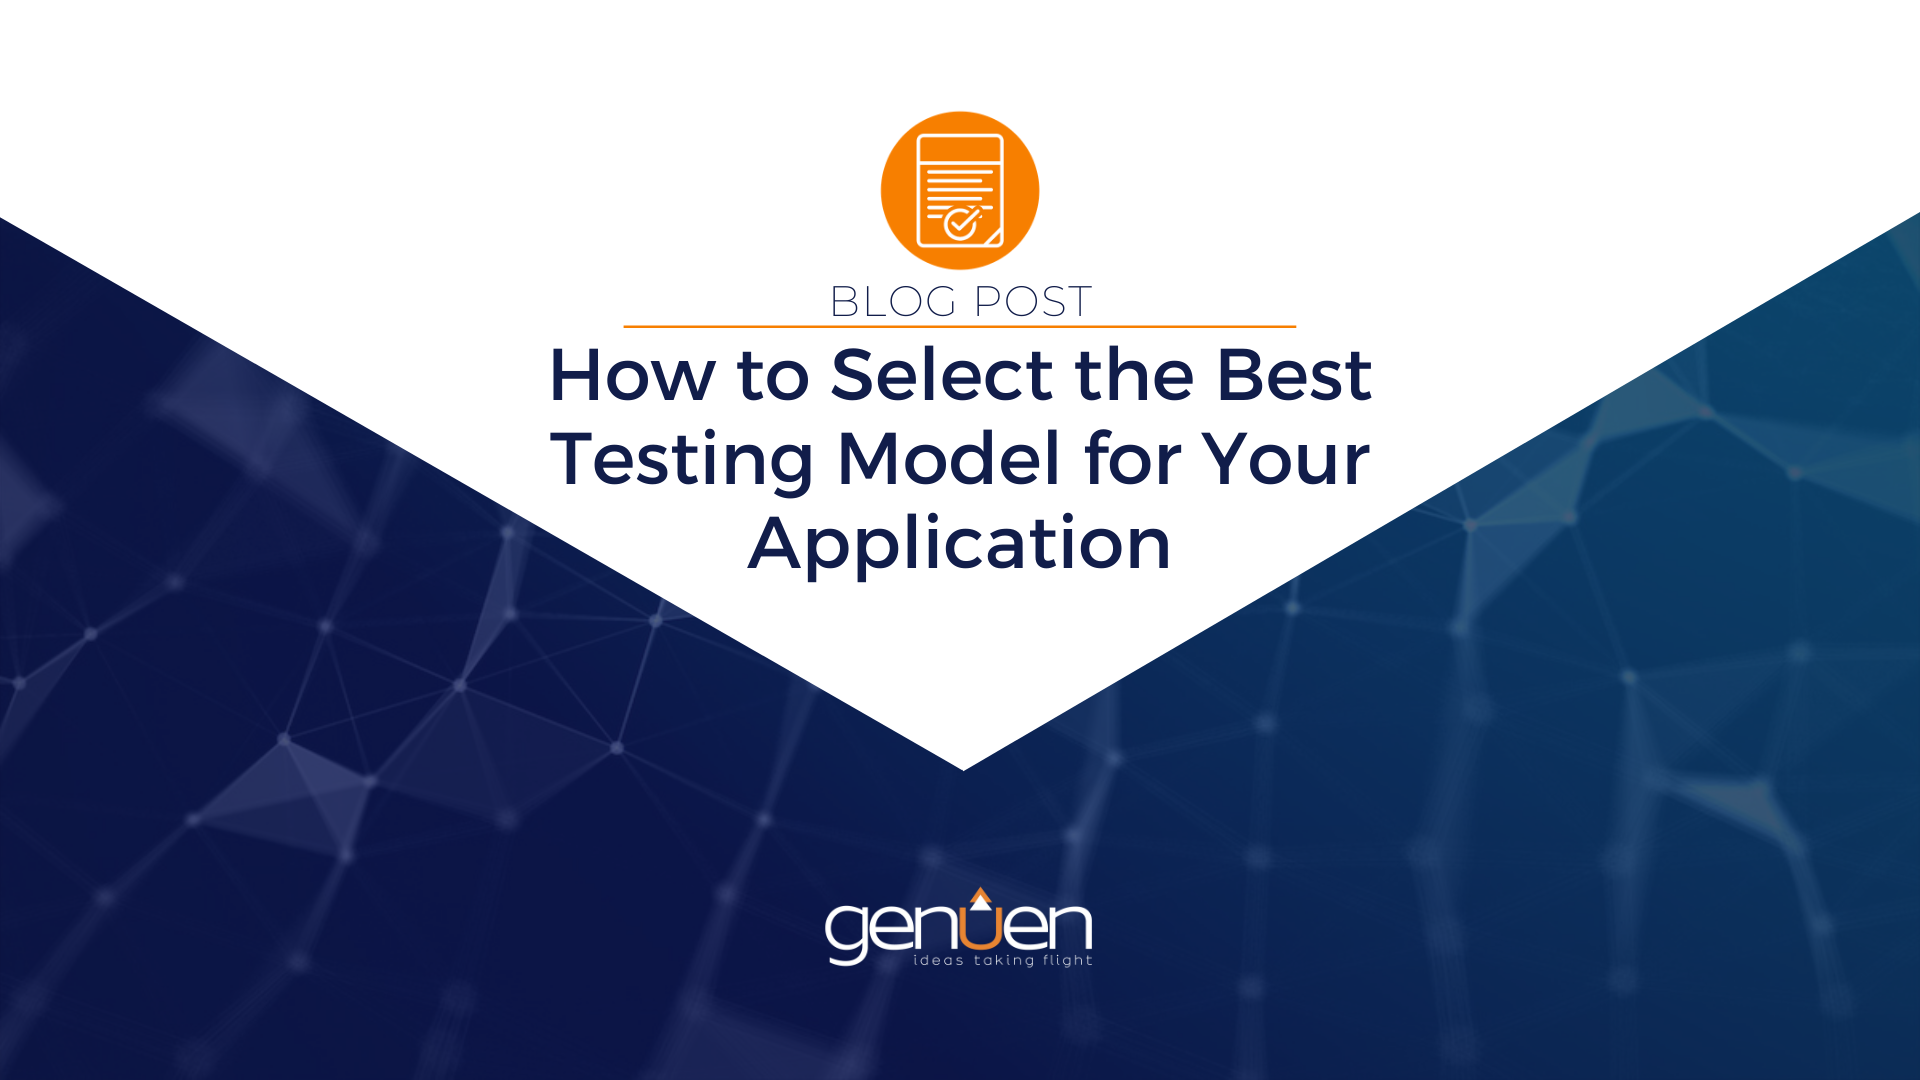 How to Select the Best Testing Model for Your Application